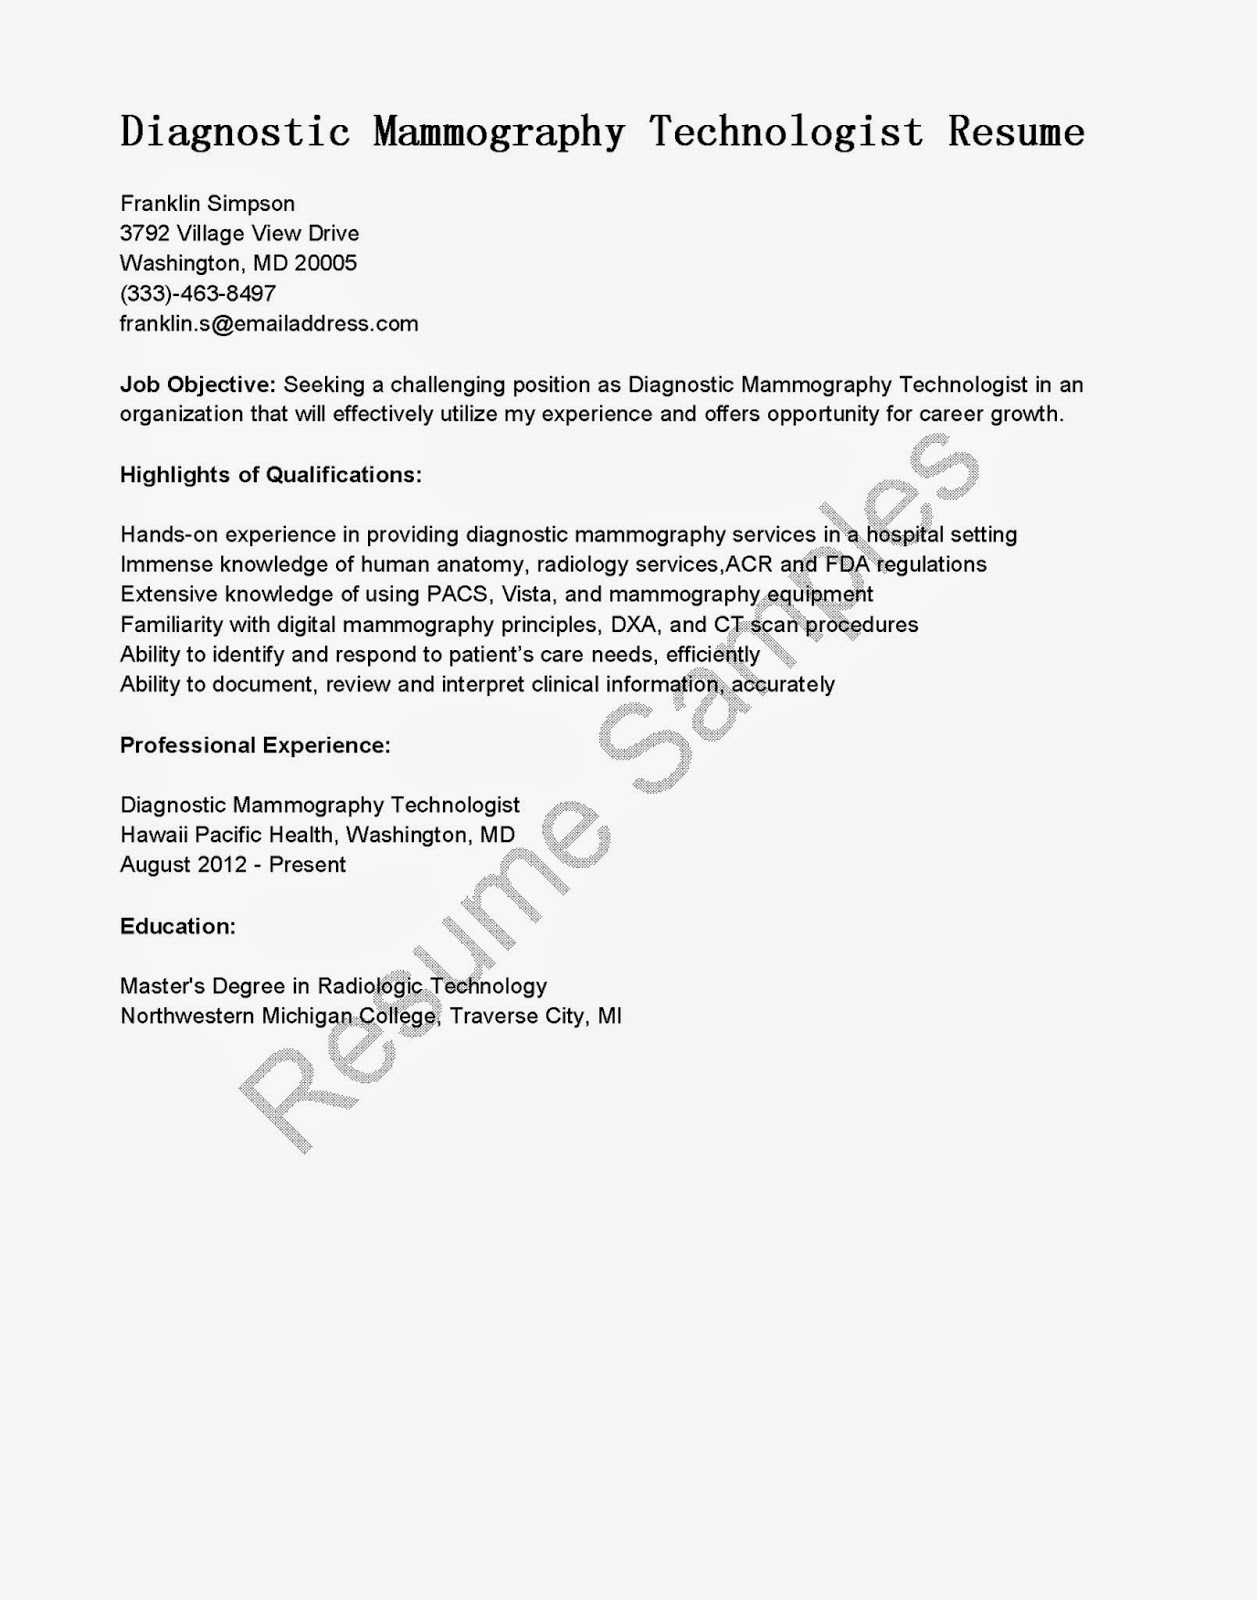 Resume In Healthcare Healthcare Data Analyst Resume Samples Jobhero Resume Samples Diagnostic Mammography Technologist Resume